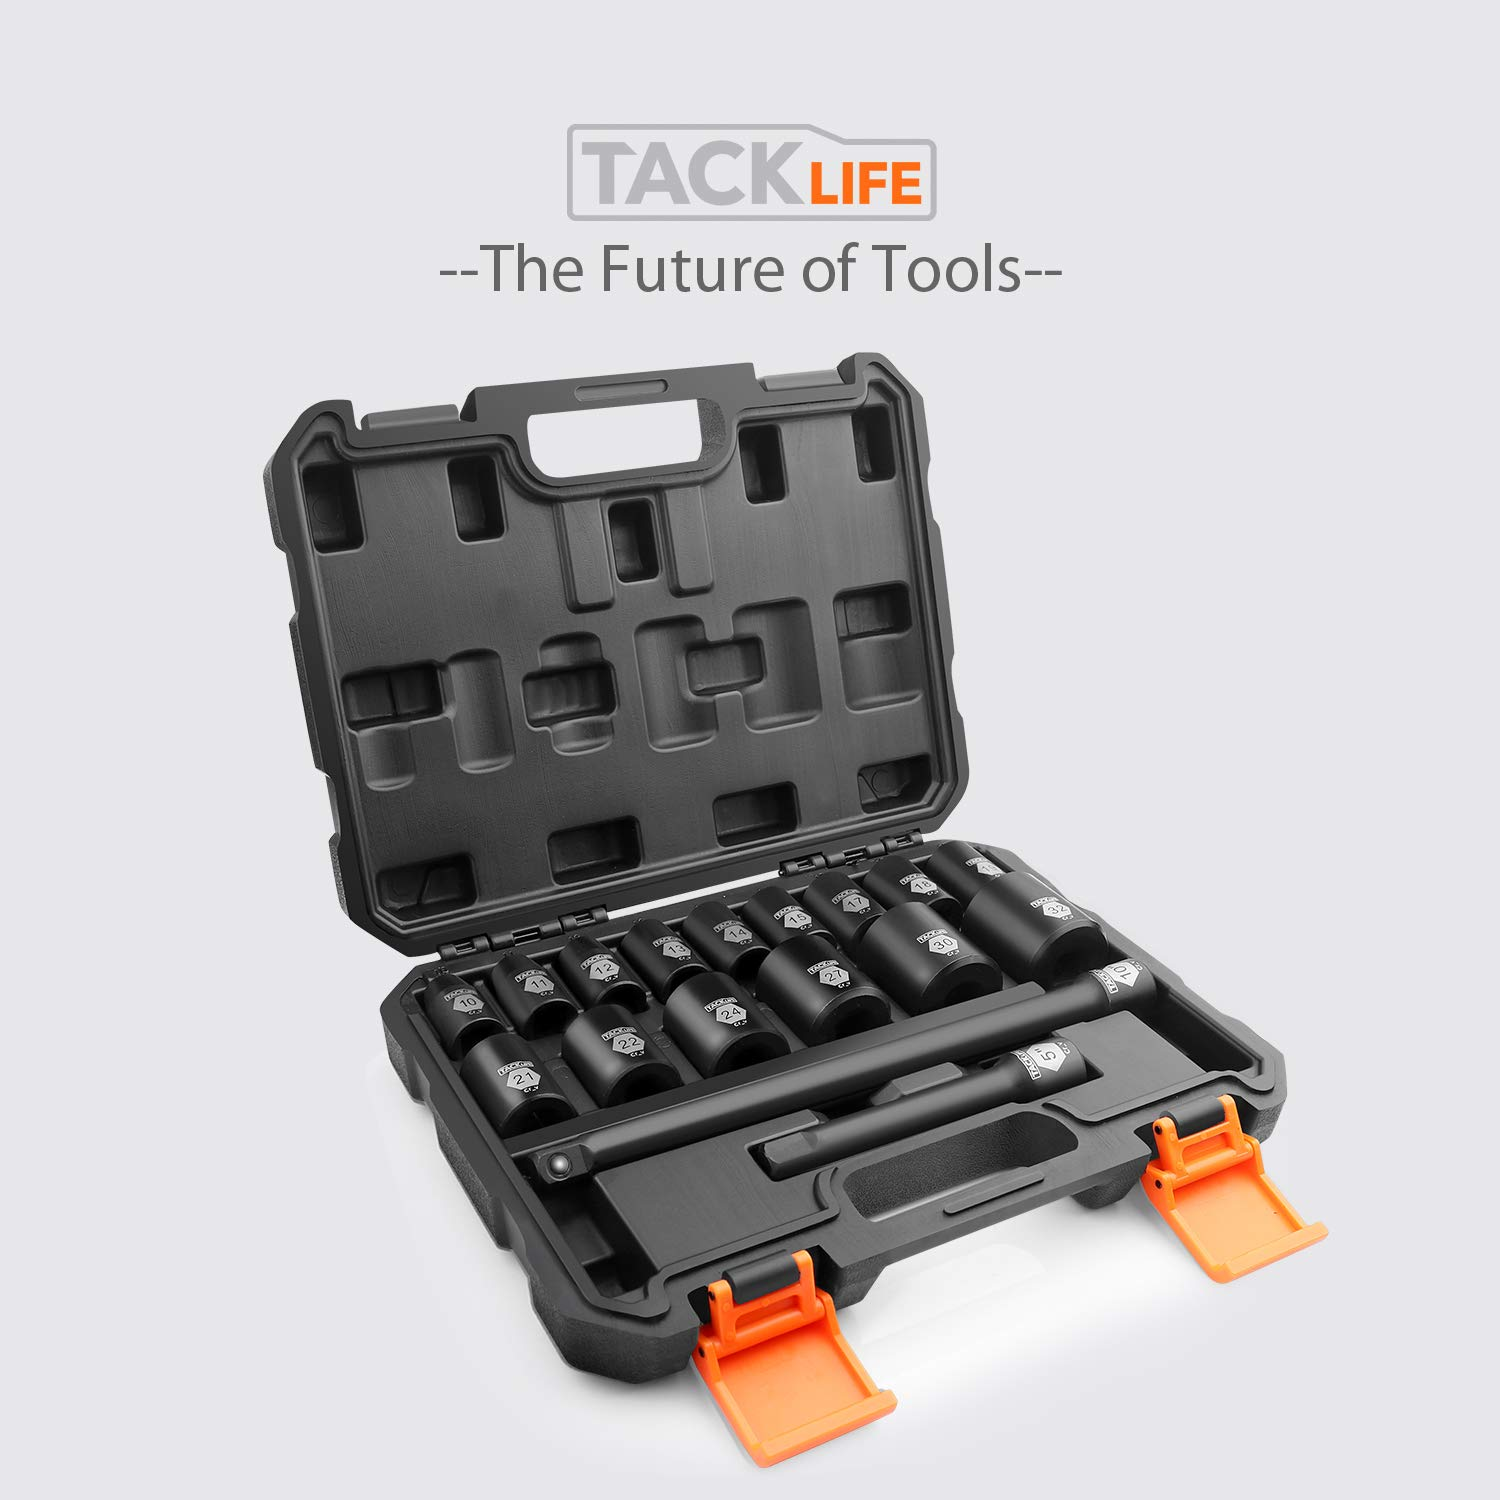 TACKLIFE Complete 1//2-Inch Drive Shallow Impact Socket Set Metric 17-Piece Set CR-V 6-Point - HIS3A